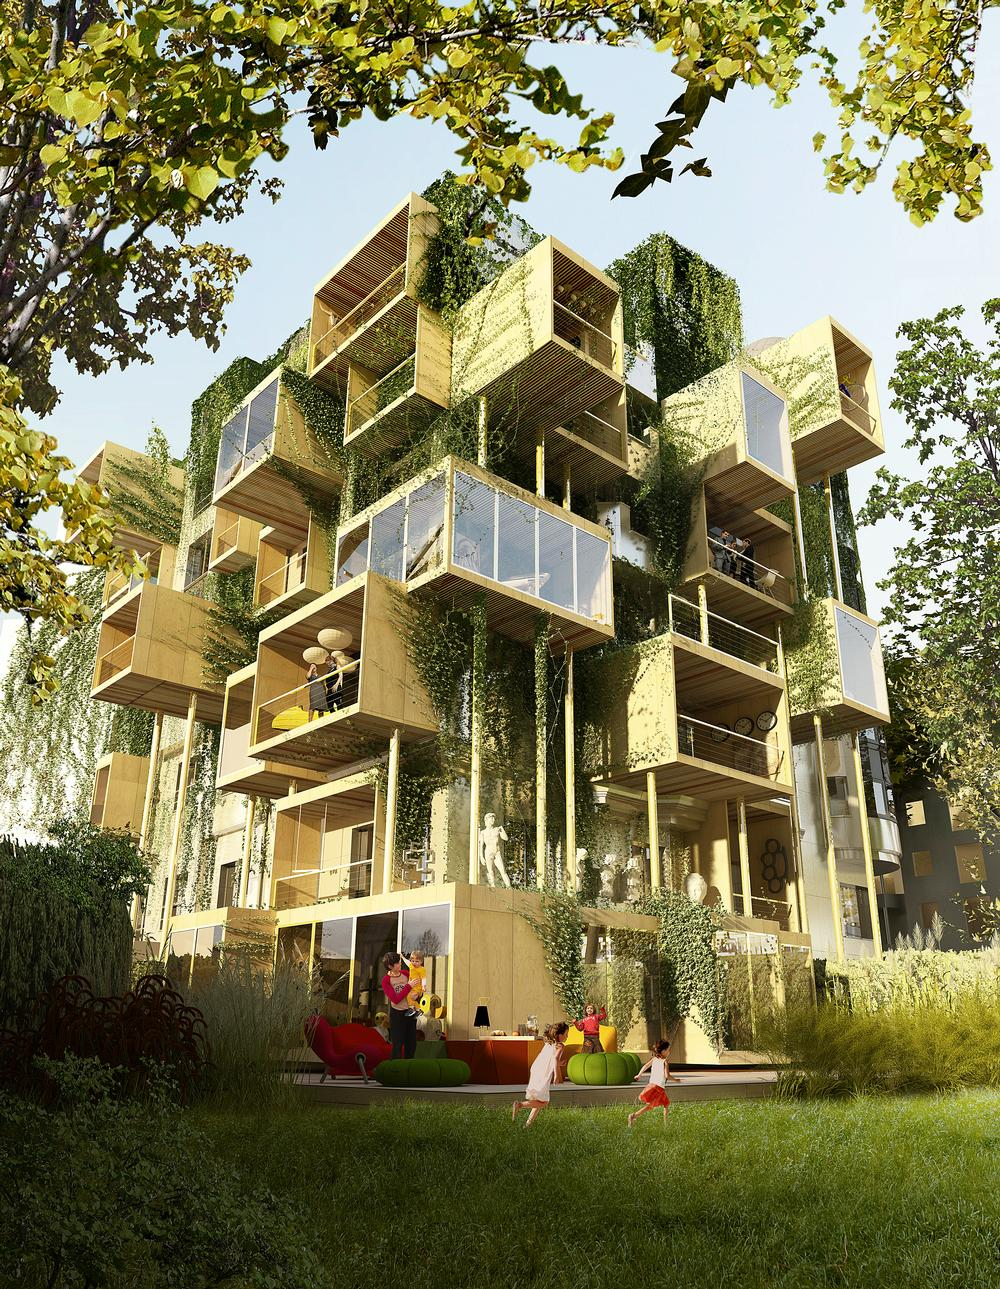 Parasitic architecture is quick to build, and Malka said Plug-In City 75 will be completed in Q1 2018 / Malka Architecture